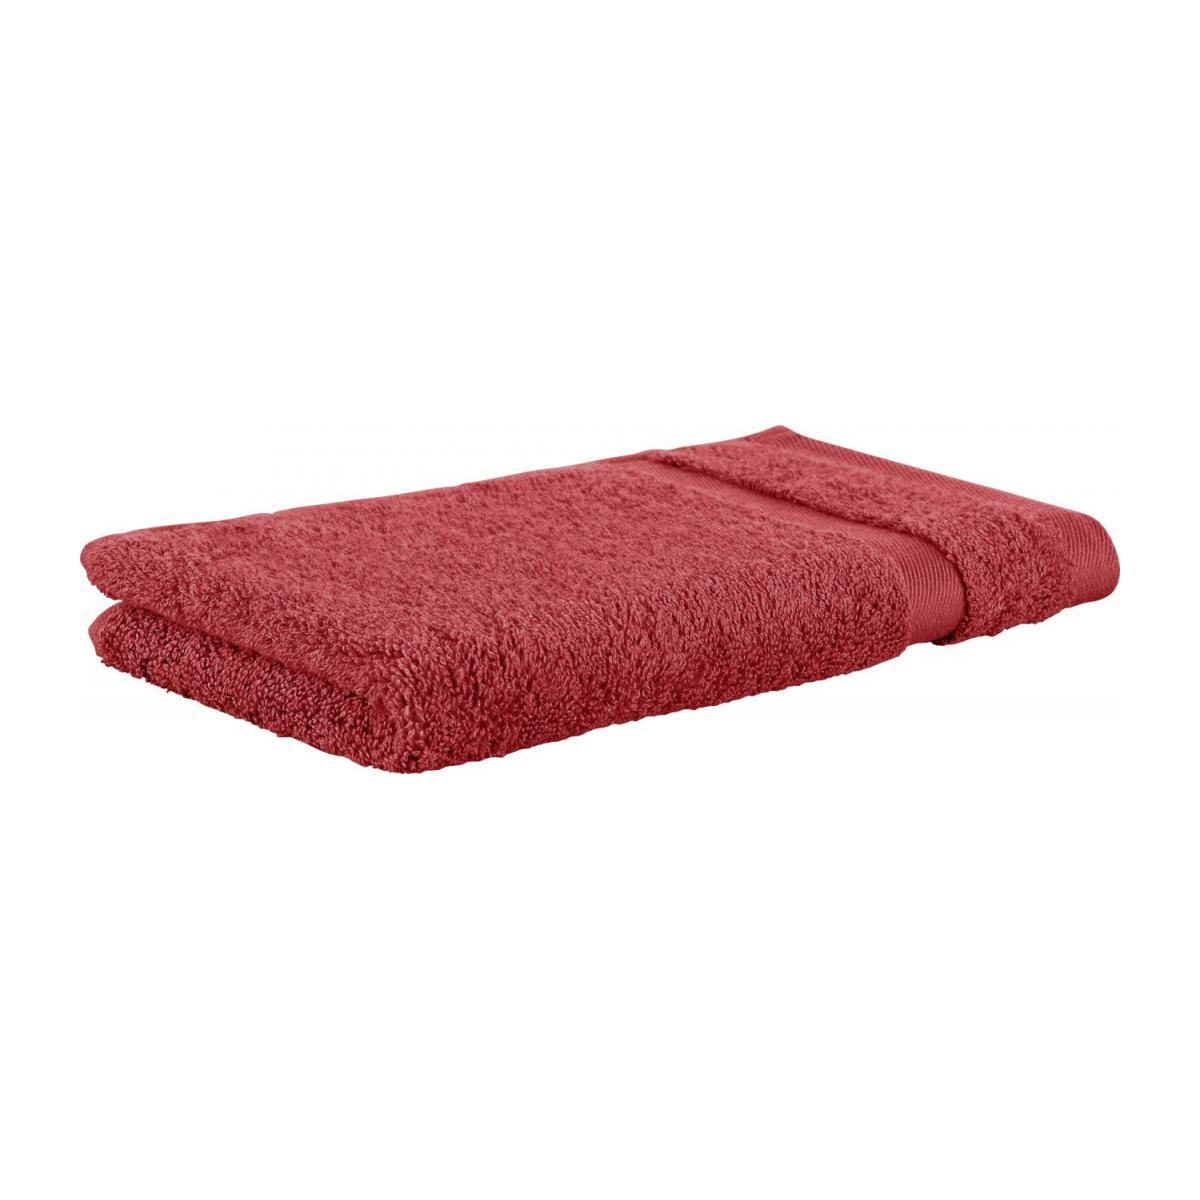 Towel made of cotton 30x50cm, coral n°1